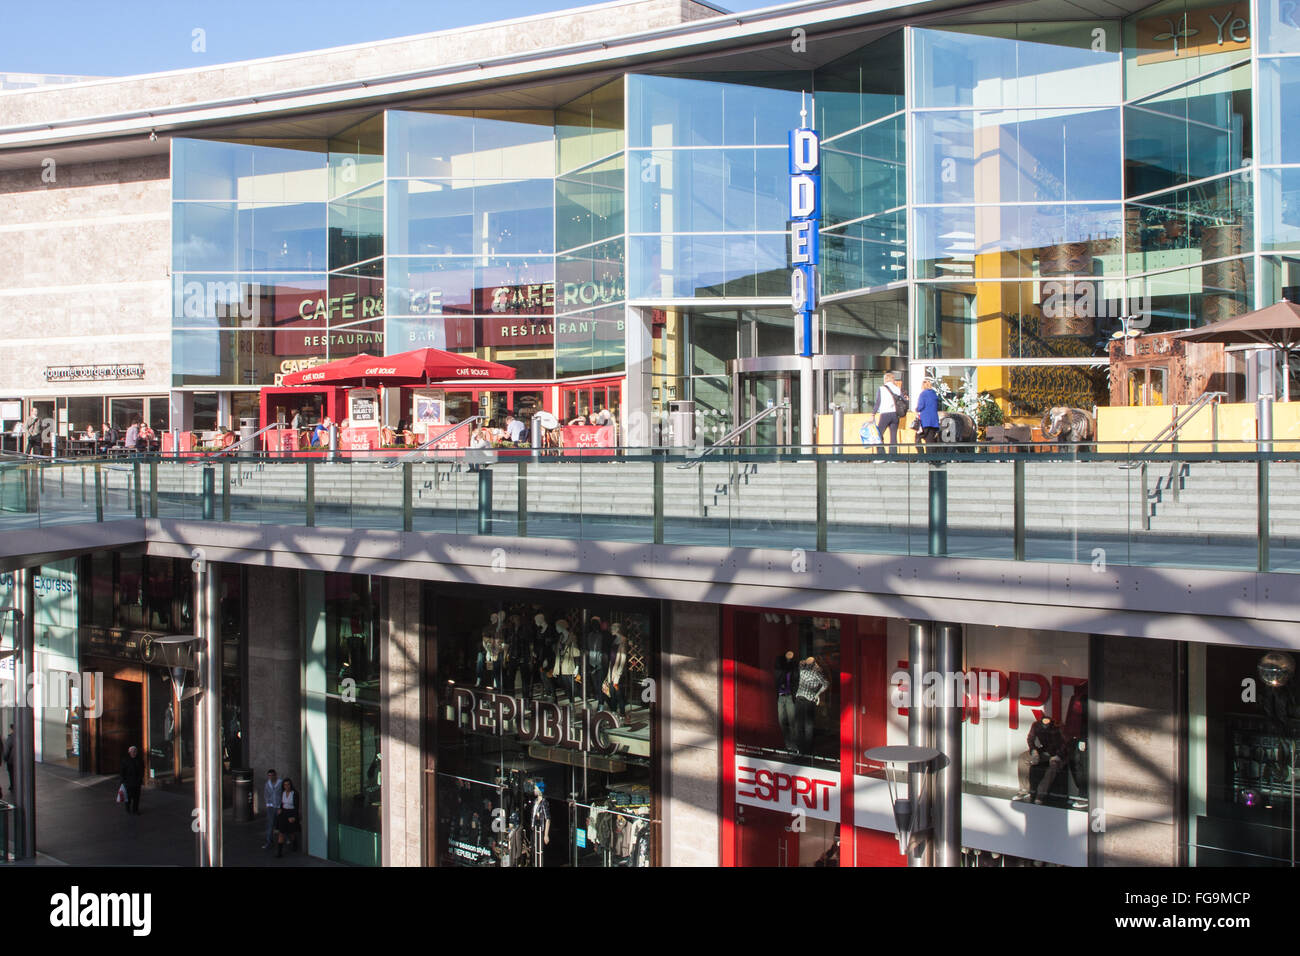 Liverpool One Shopping Mall,Centre,Center,England - Stock Image